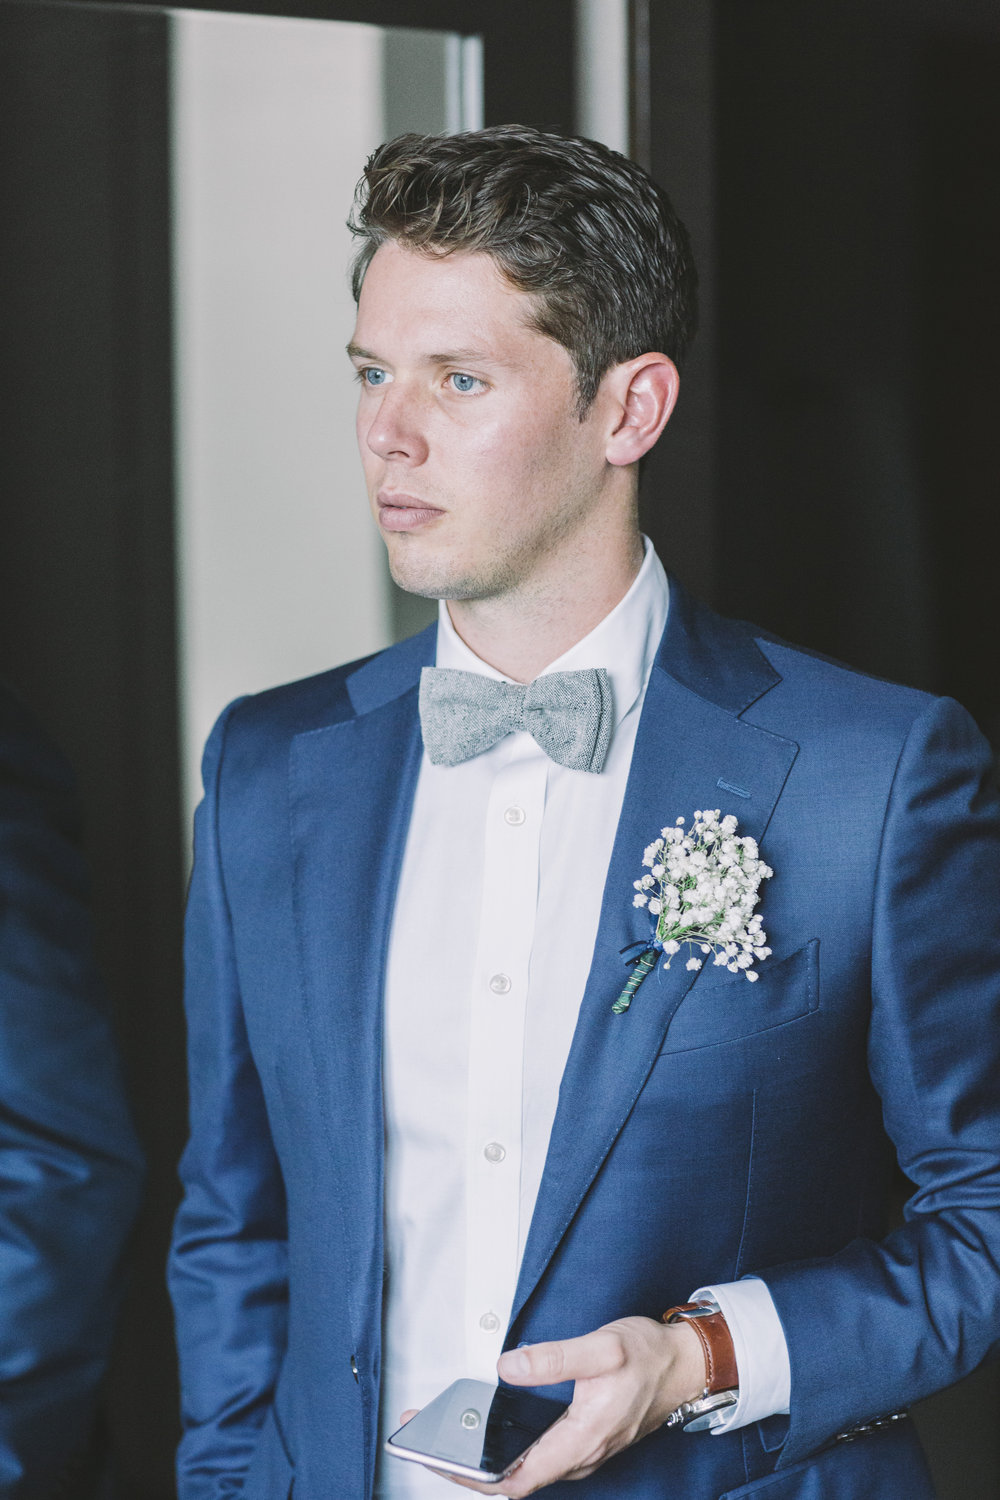 Groom with bowtie.